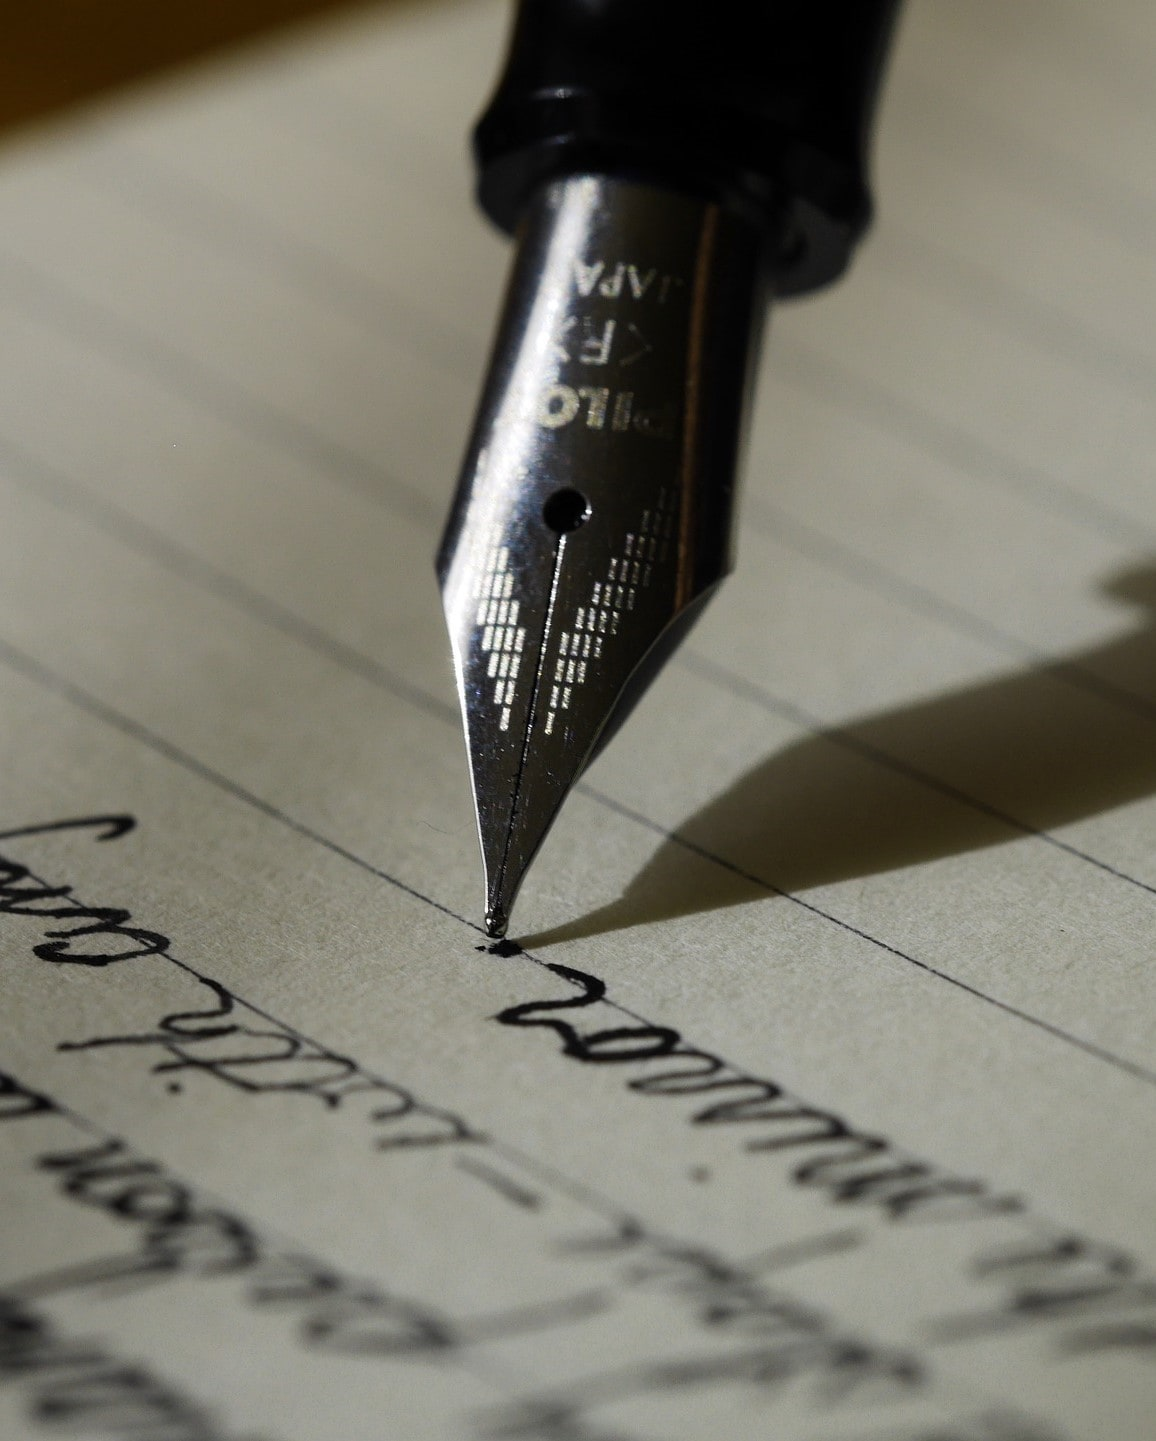 a pen poised over paper